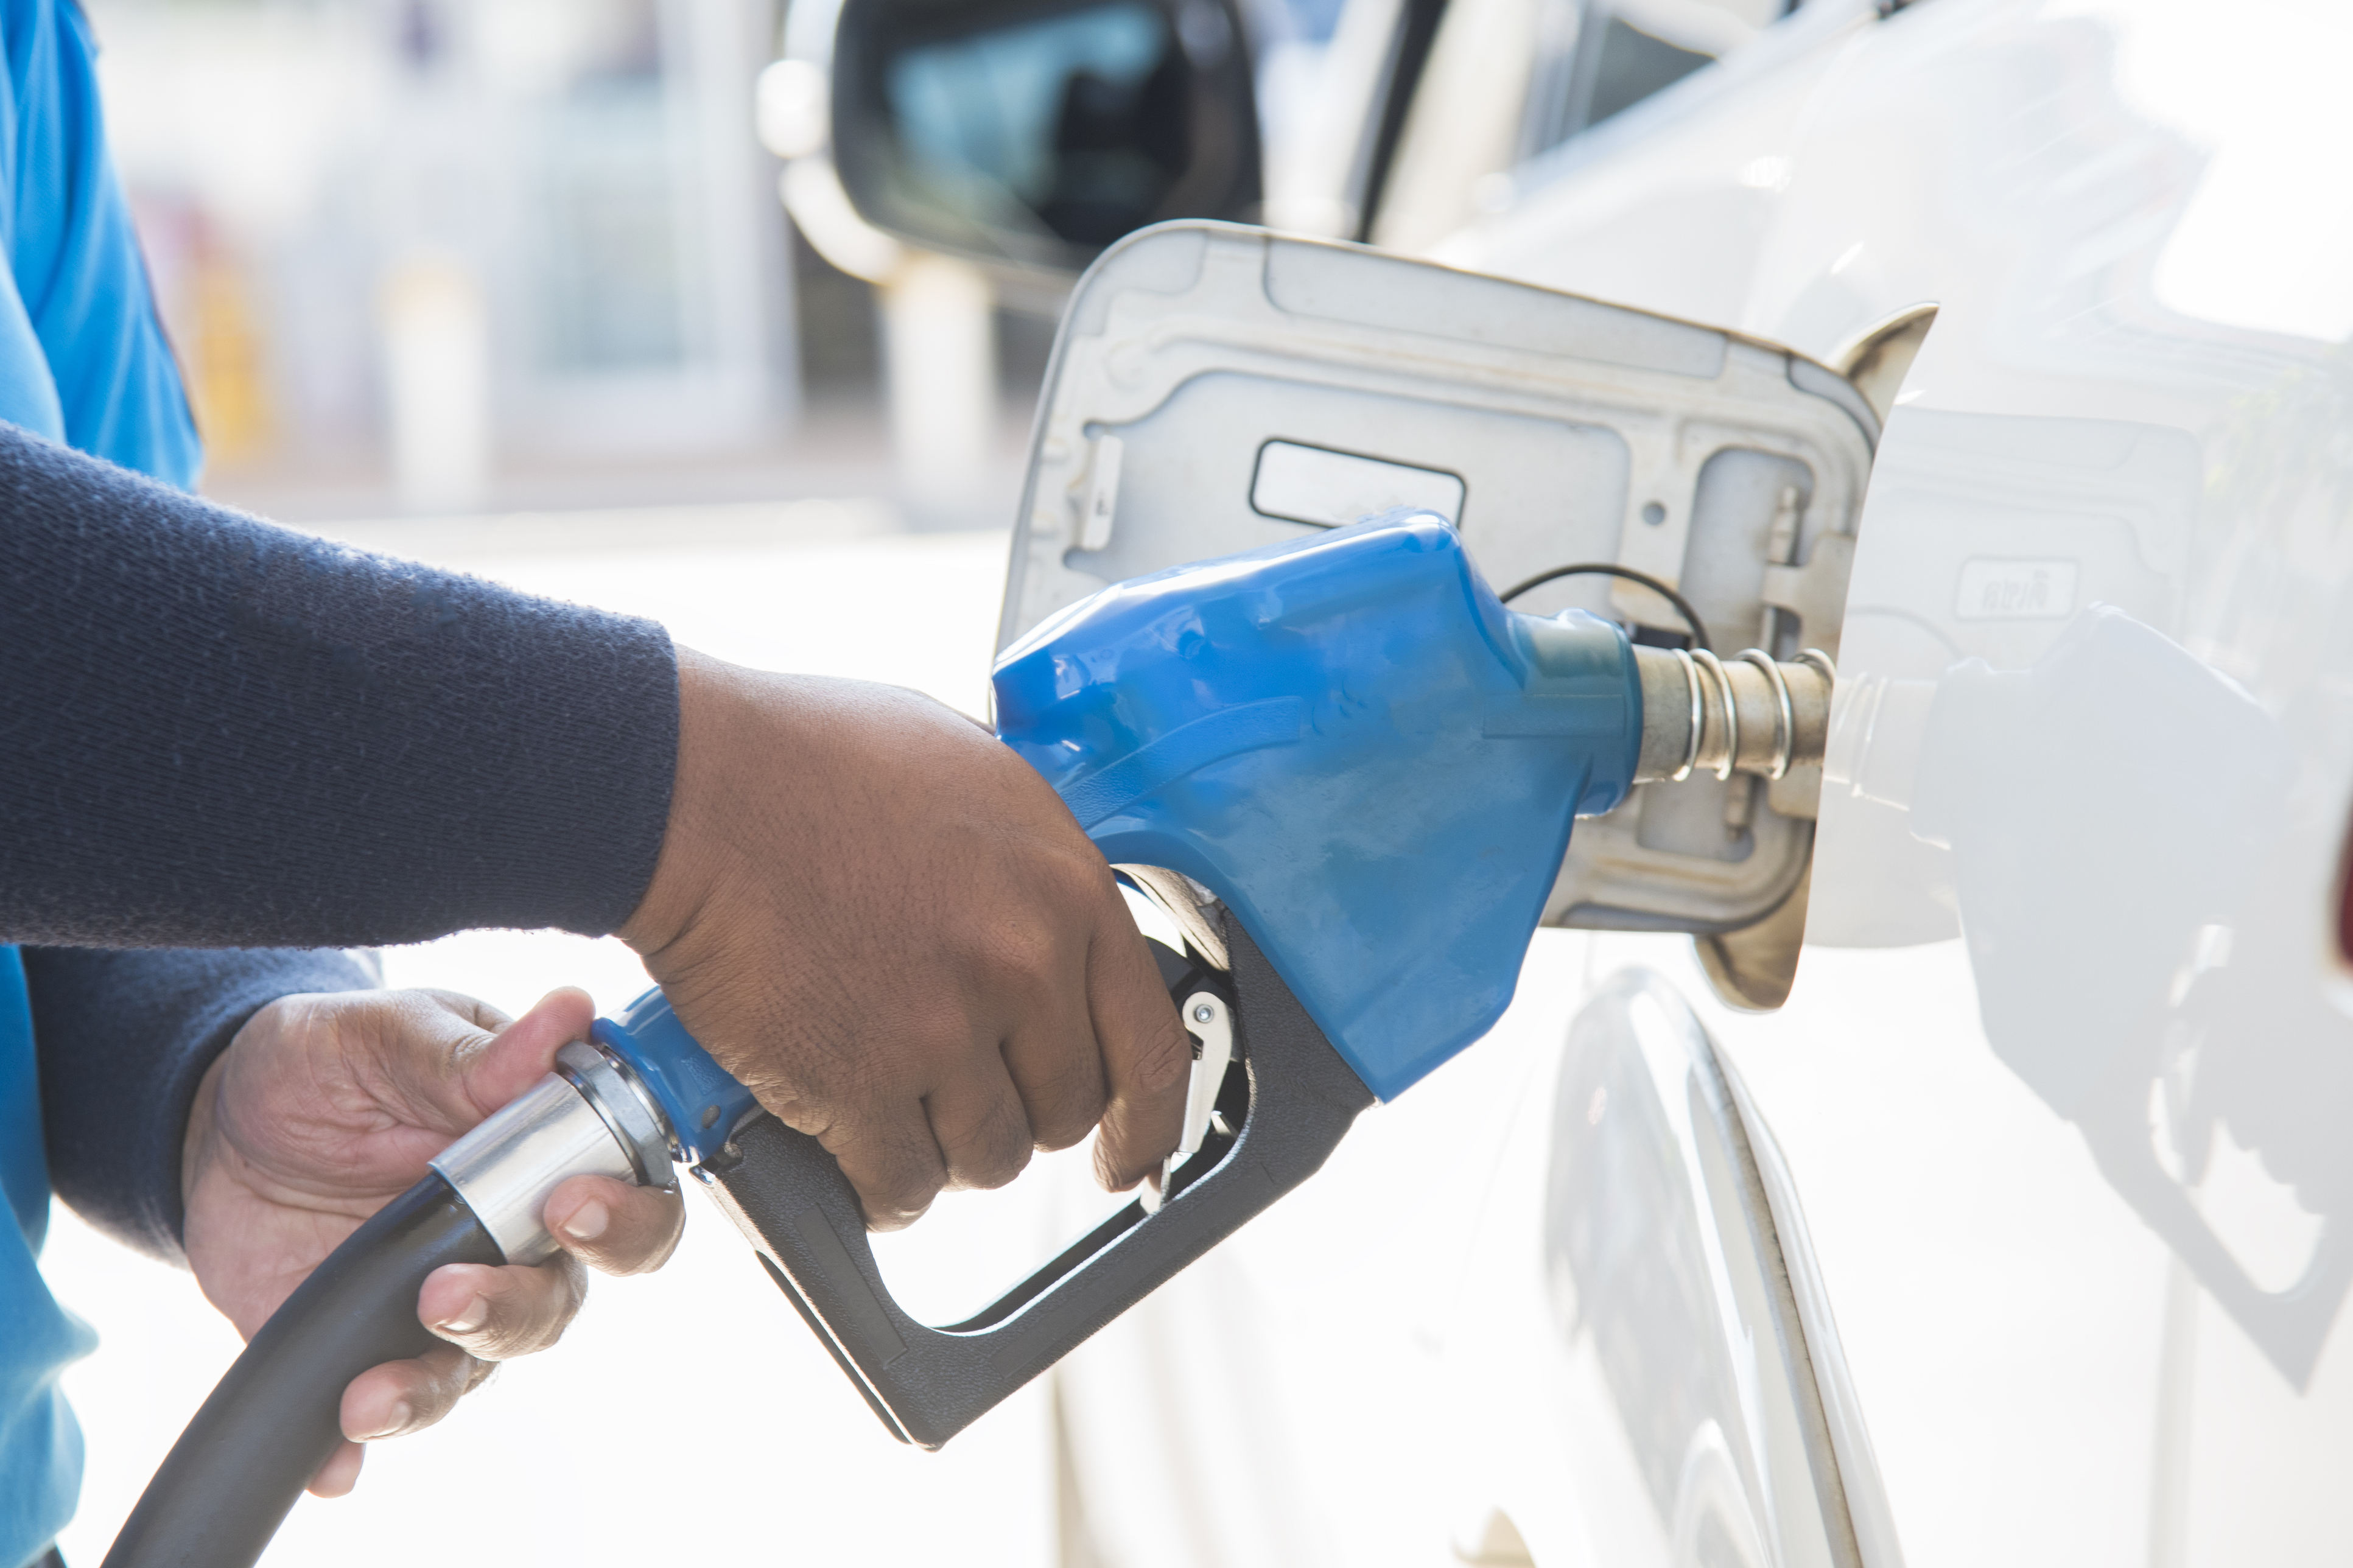 Person filling up car with fuel at a gas station.